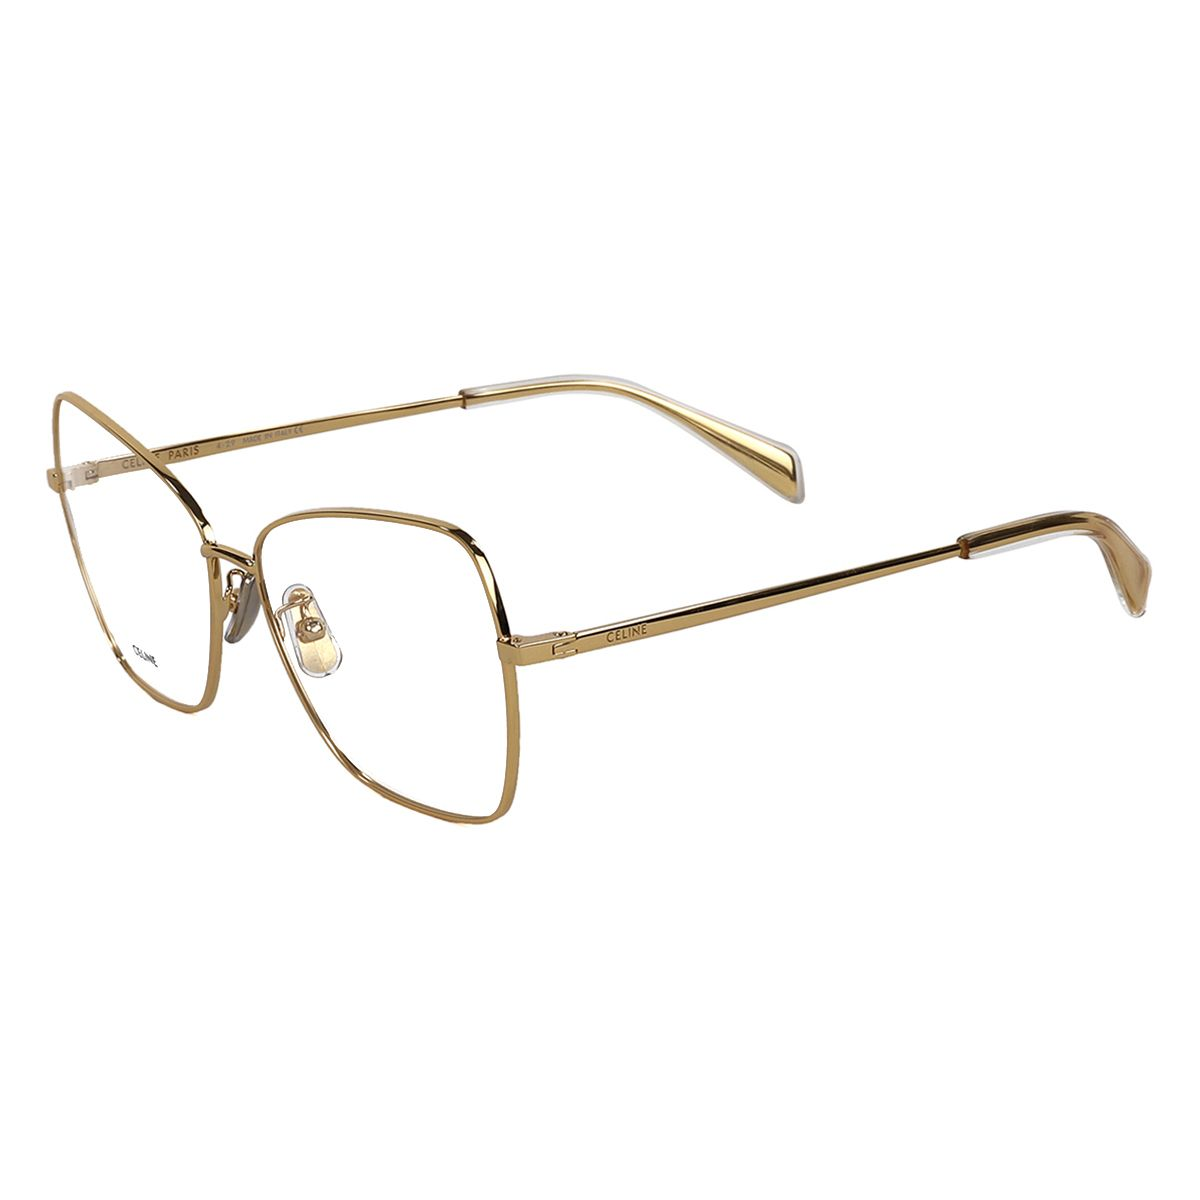 CELINE FRAMES/3KITCLSMALR02 / GOLD(CLEAR)